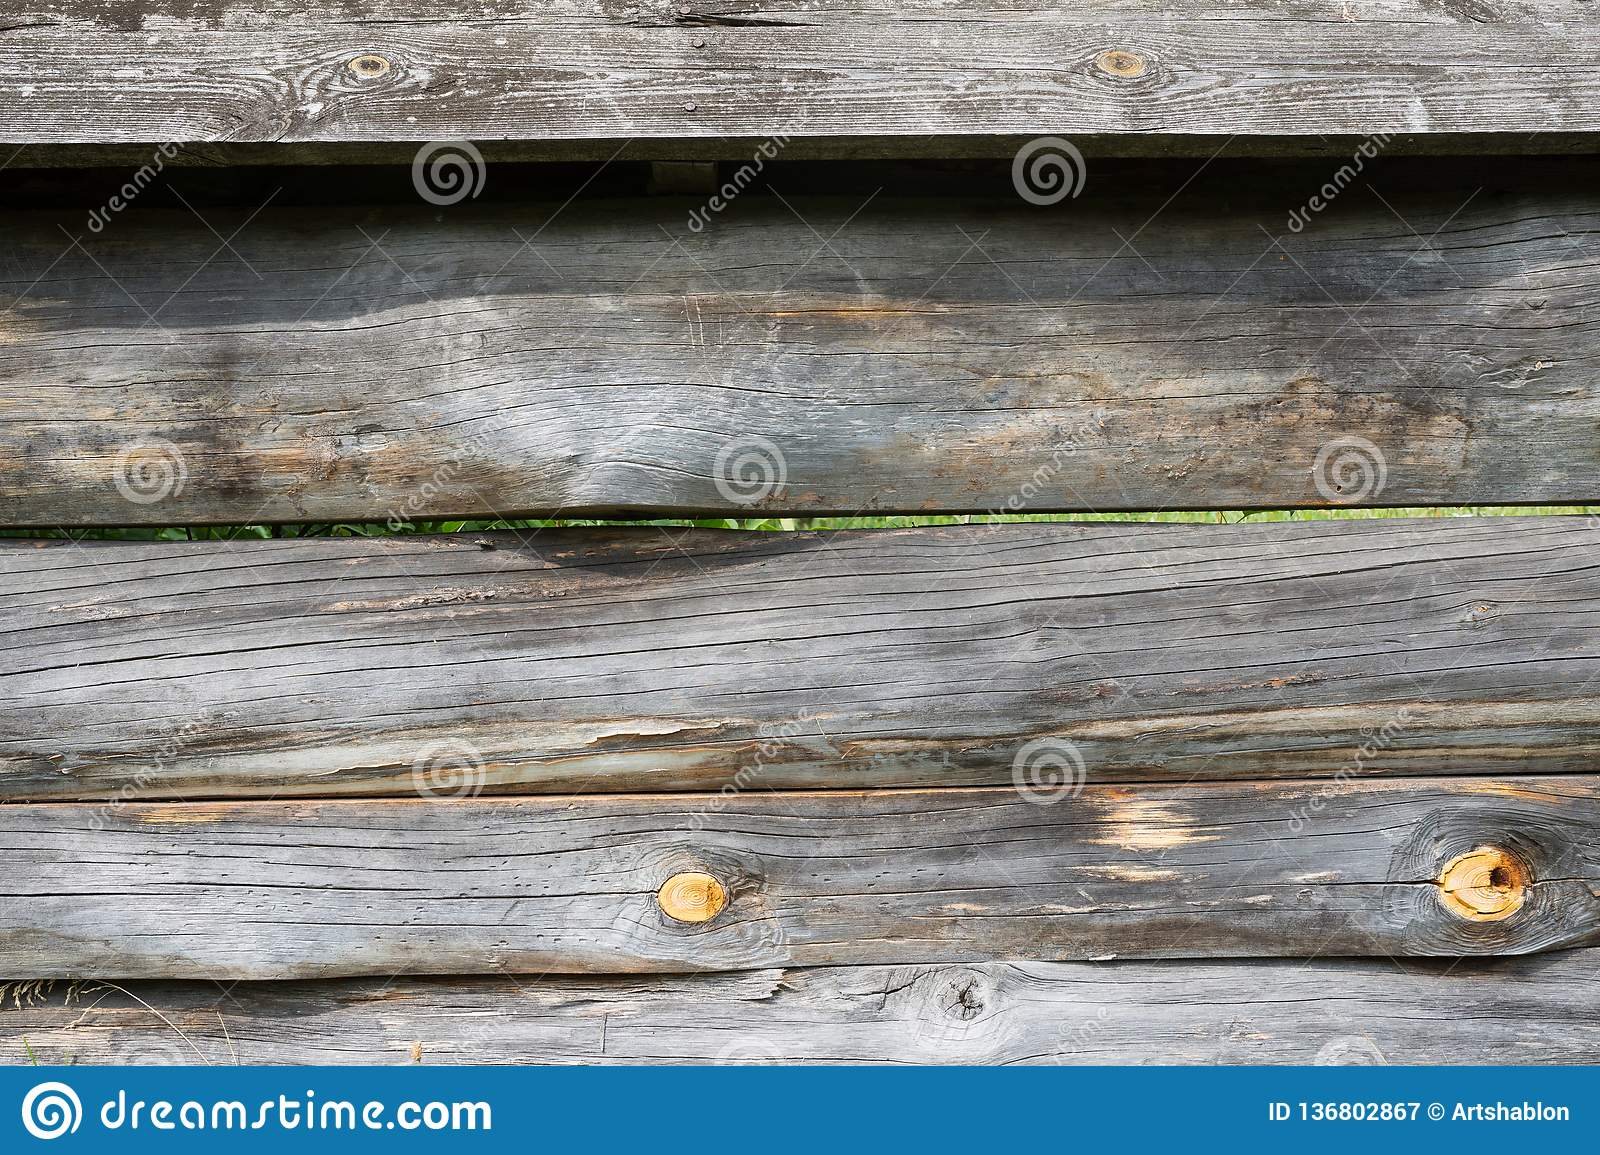 Old wood background. Close-up fence. The texture of the wooden fence